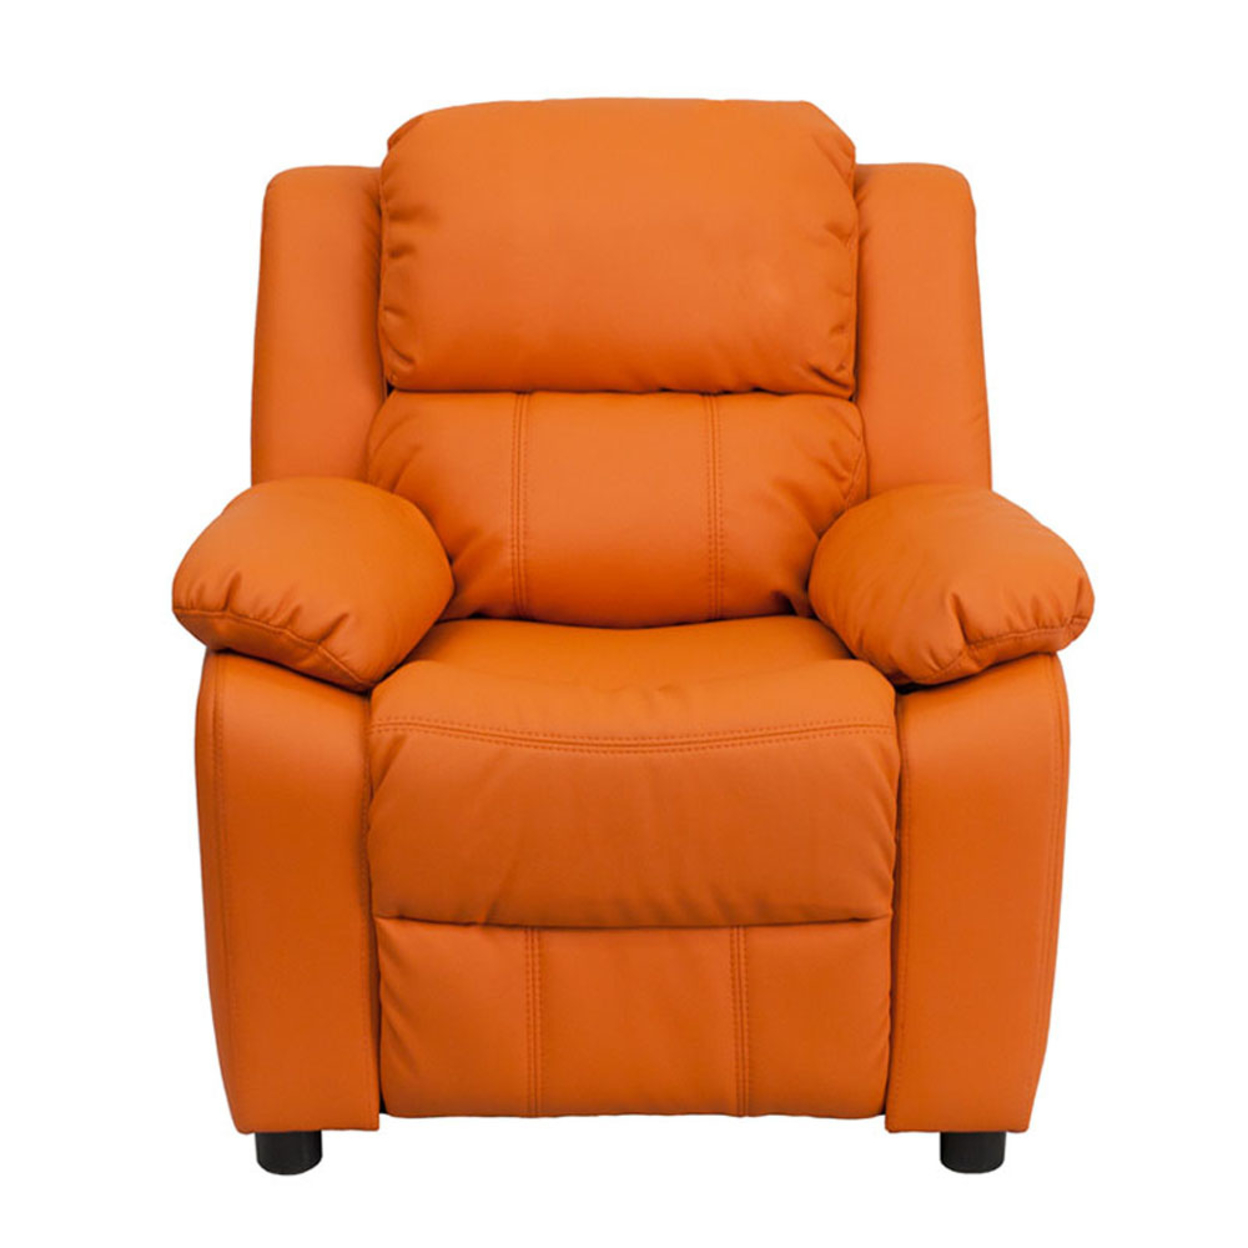 Flash Furniture Deluxe Heavily Padded Contemporary Orange Vinyl Kids Recliner with Storage Arms [863-Bt-7985-Kid-Orange-Gg] 59e460132a00e43b6679add1